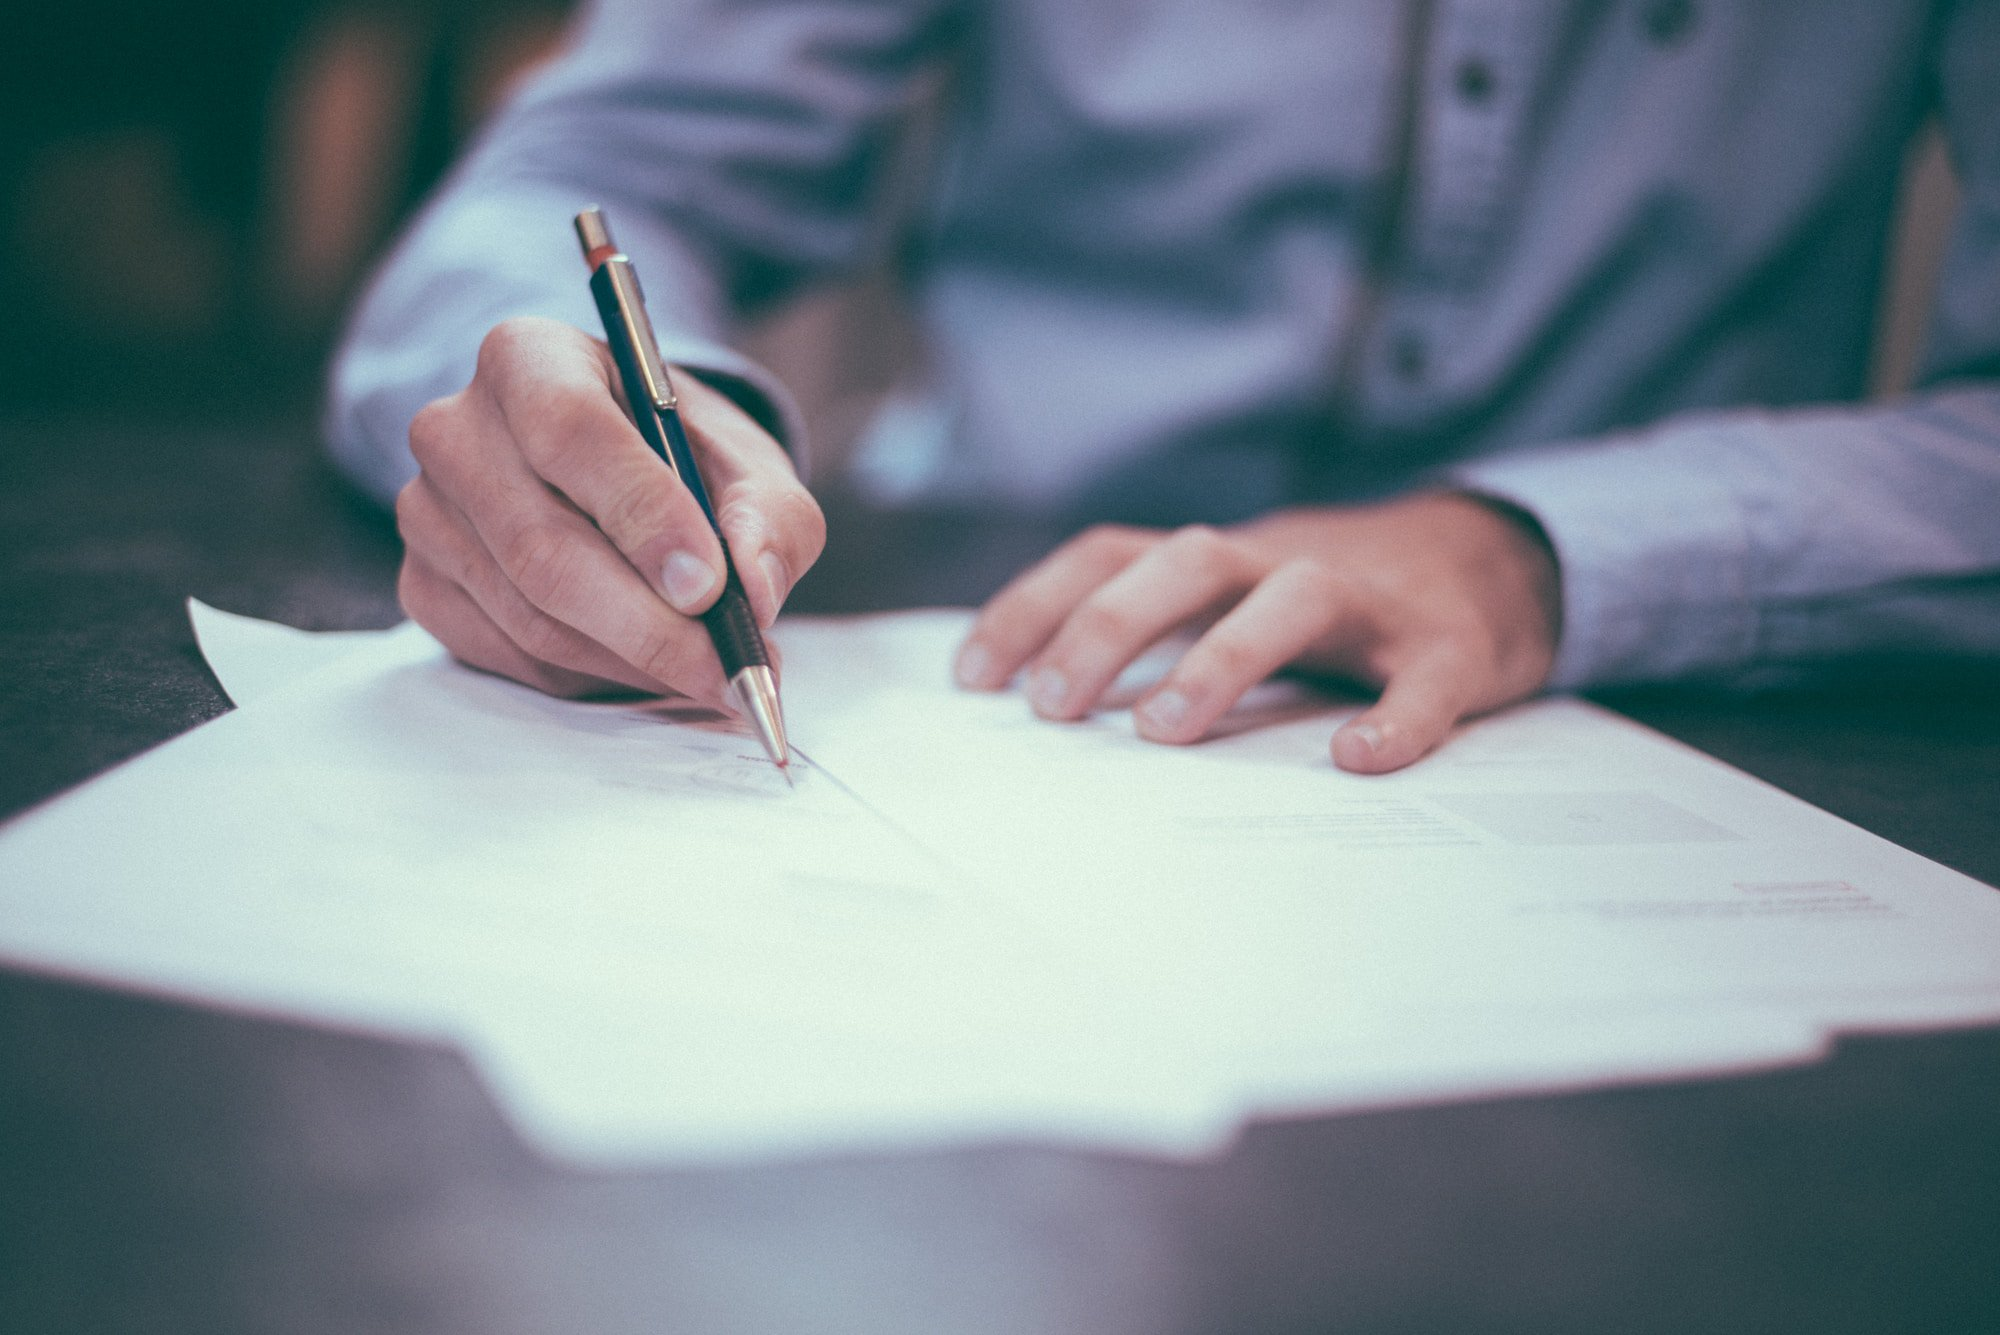 Checklist for Effective Paragraph Writing in a Technical Report